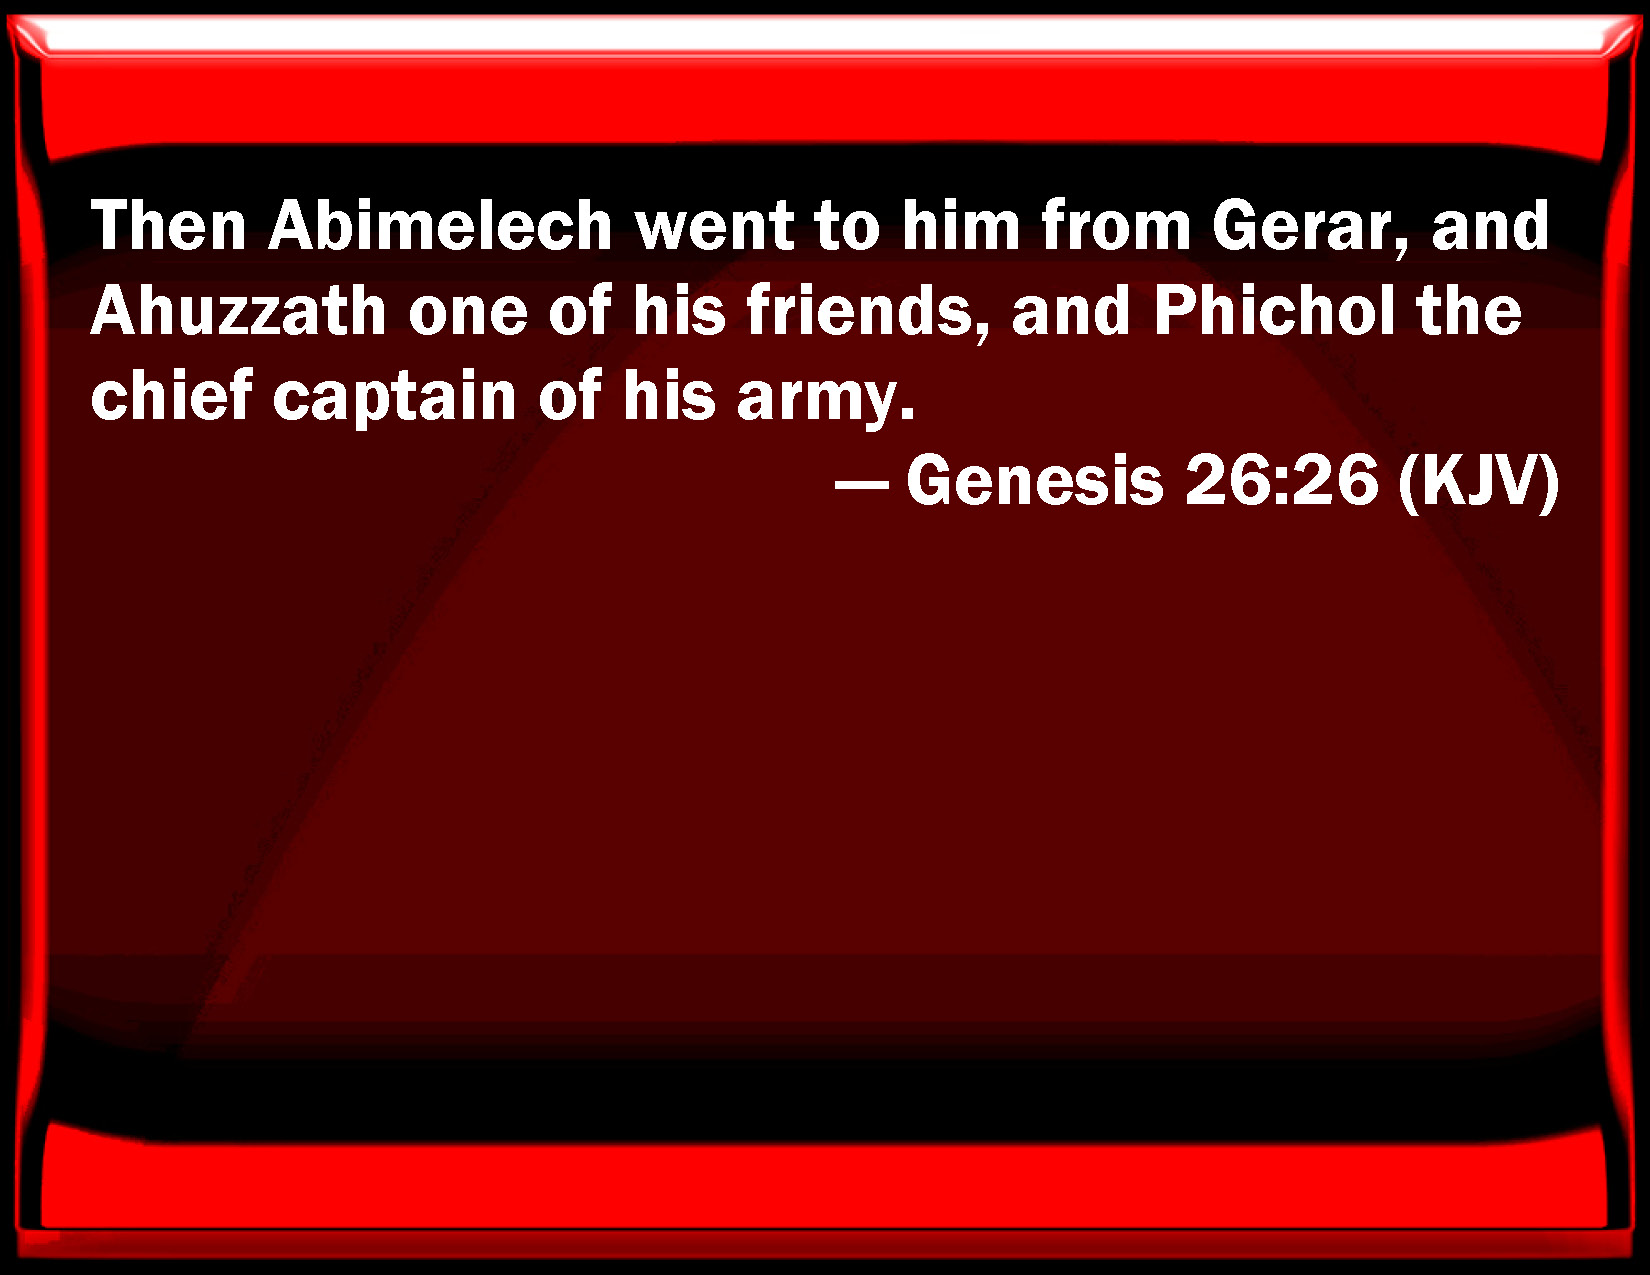 Genesis 26:26 Then Abimelech went to him from Gerar, and Ahuzzath one of  his friends, and Phichol the chief captain of his army.